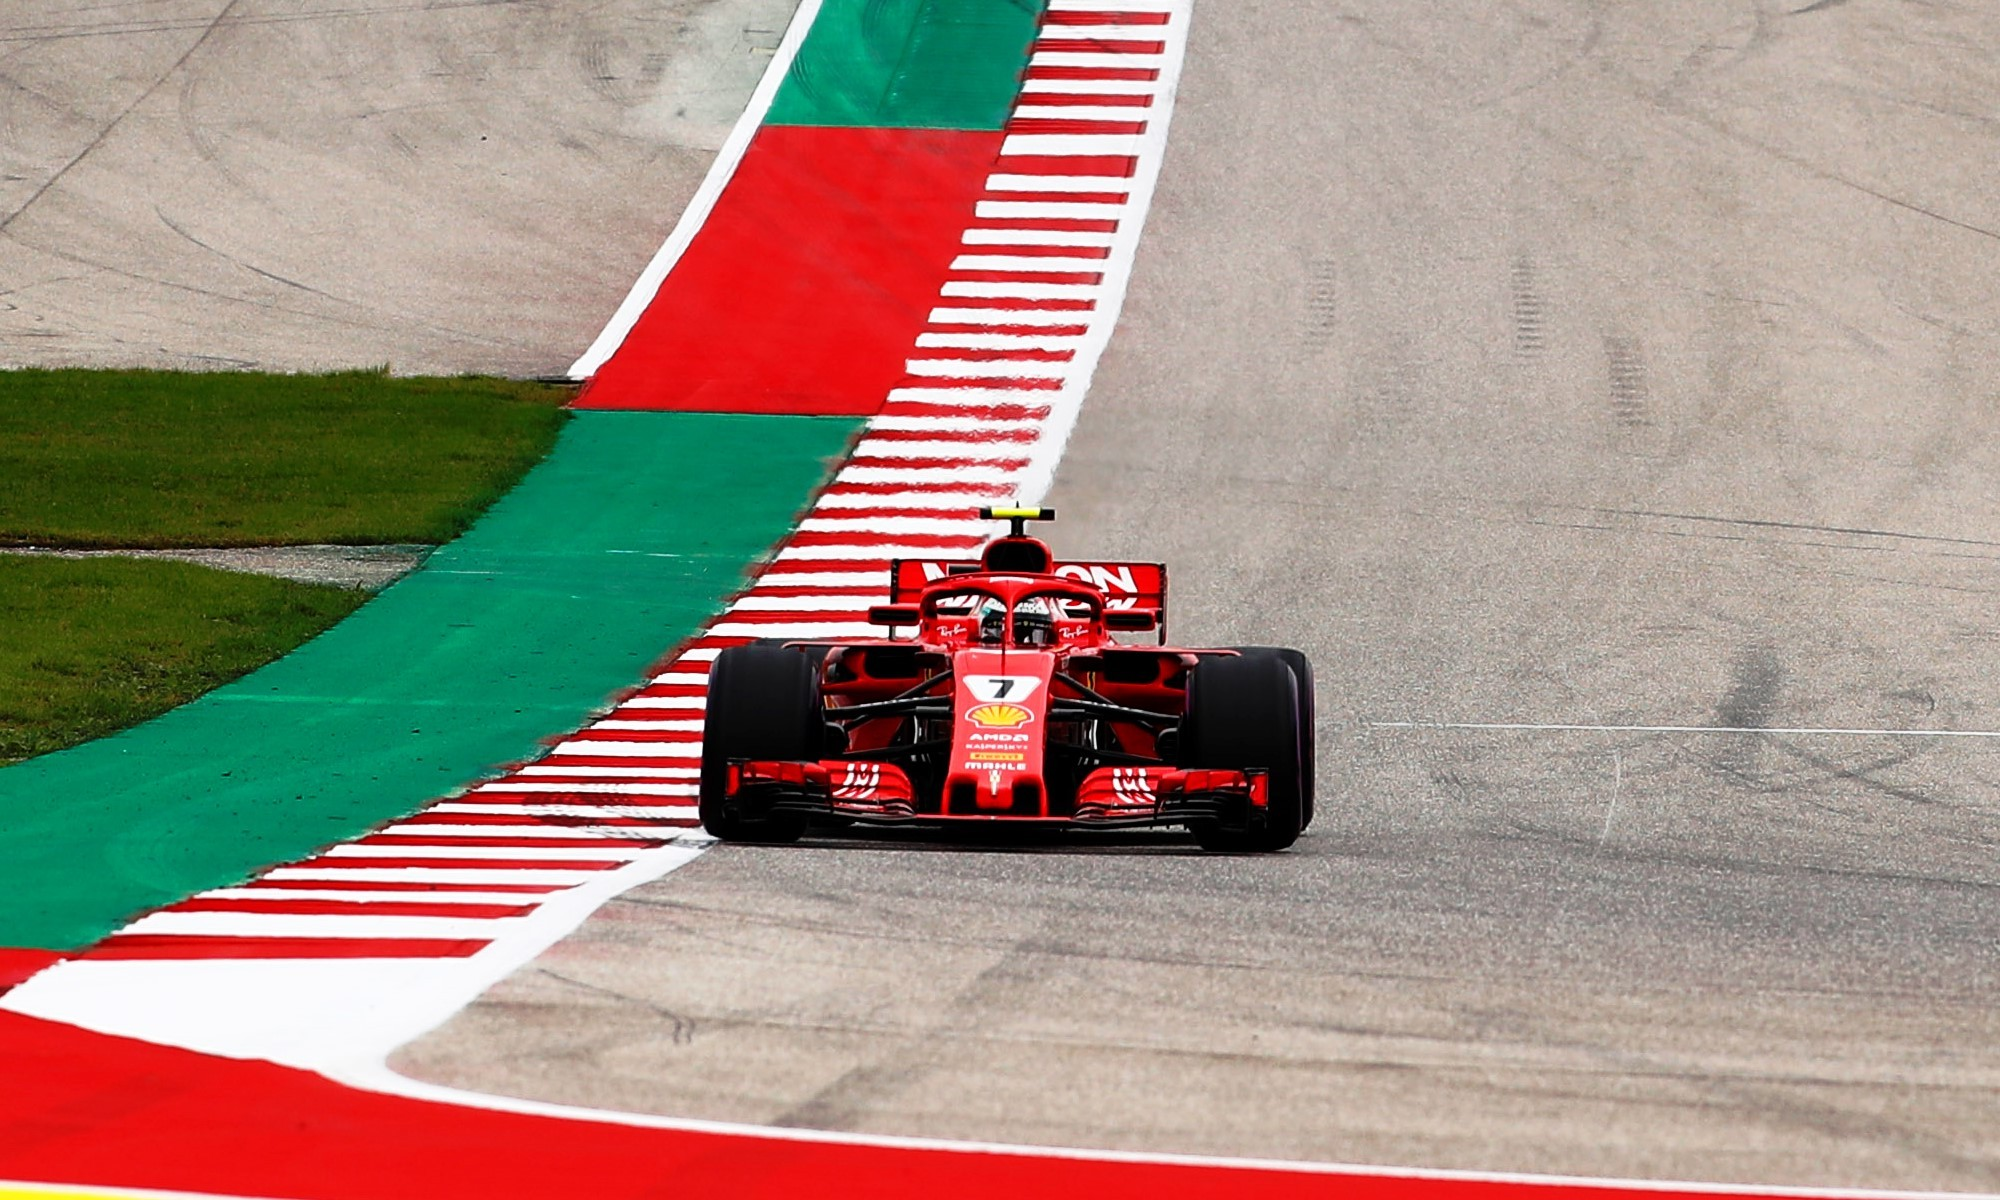 Raikkonen took victory at COTA